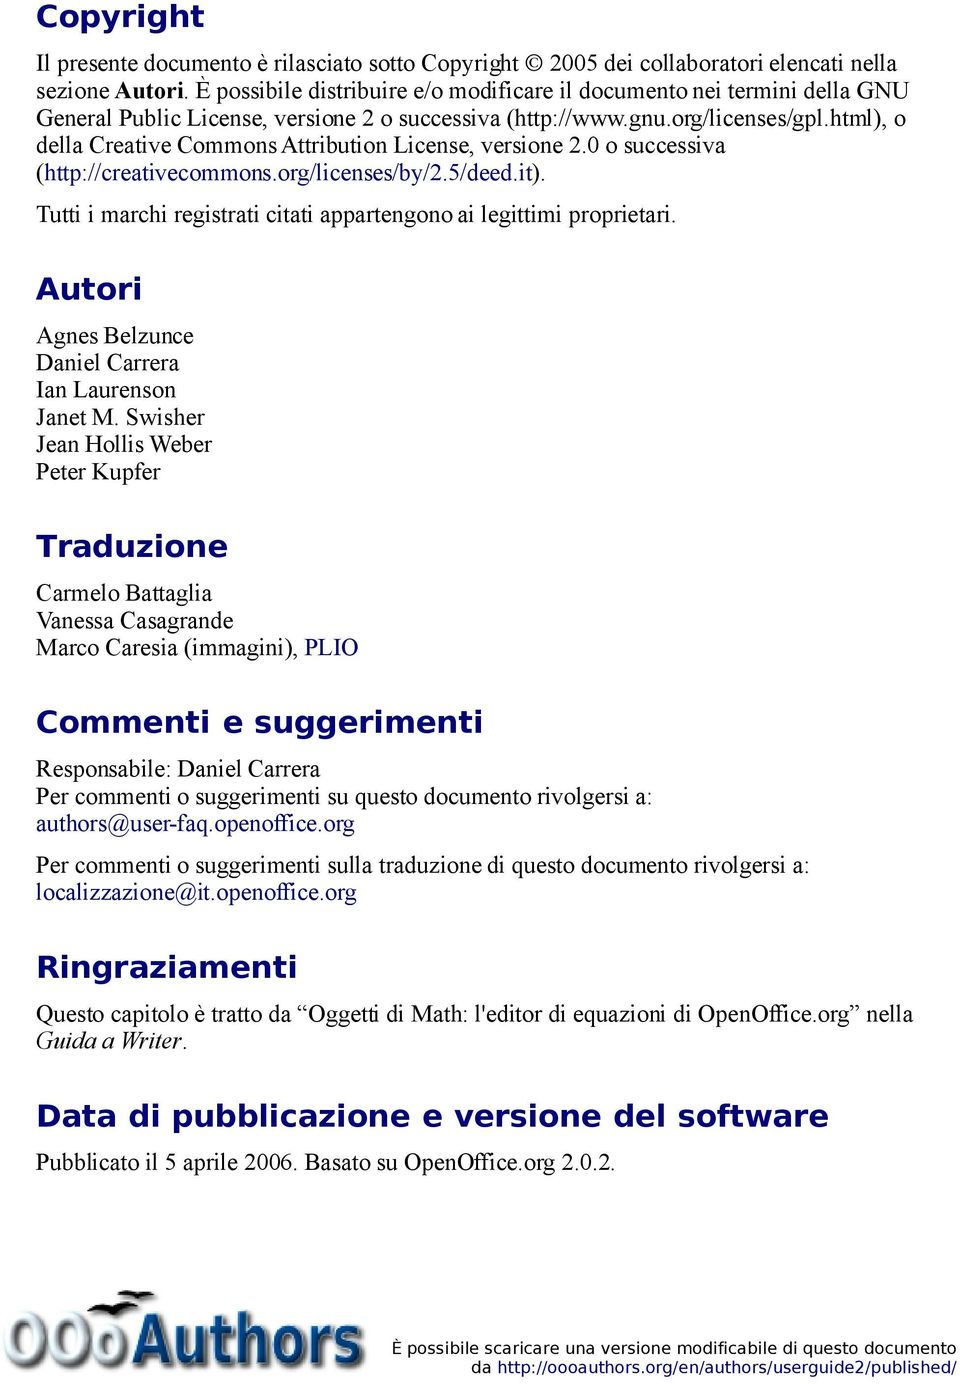 html), o della Creative Commons Attribution License, versione 2.0 o successiva (http://creativecommons.org/licenses/by/2.5/deed.it).